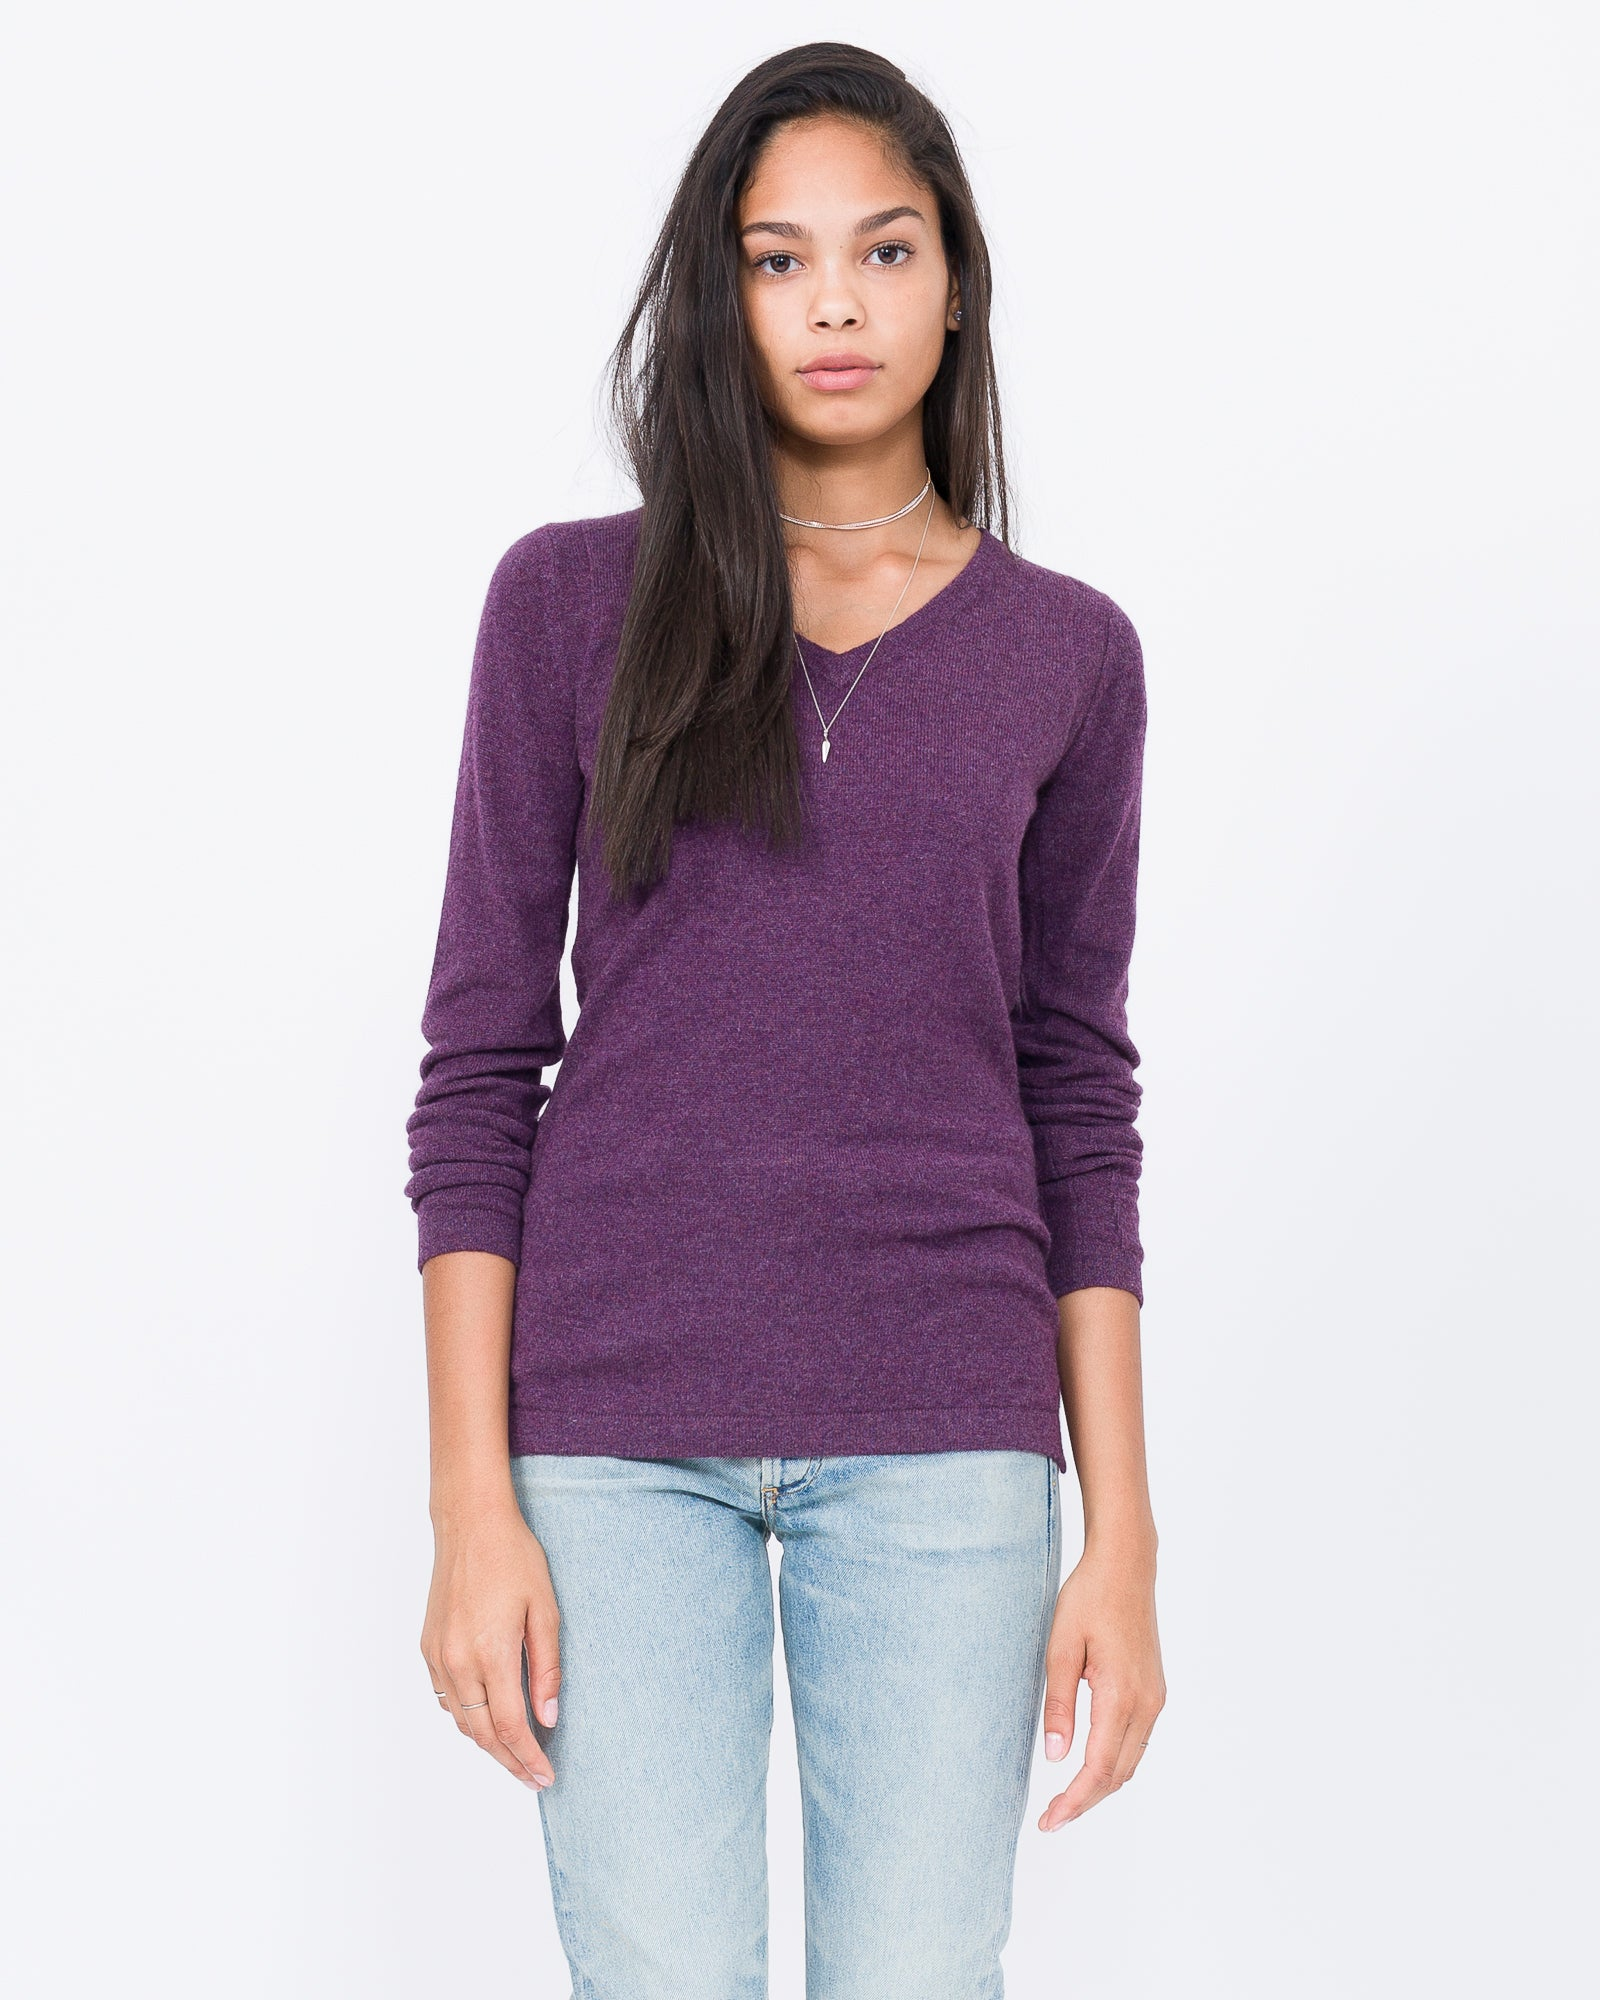 100% cashmere amethyst v neck sweater